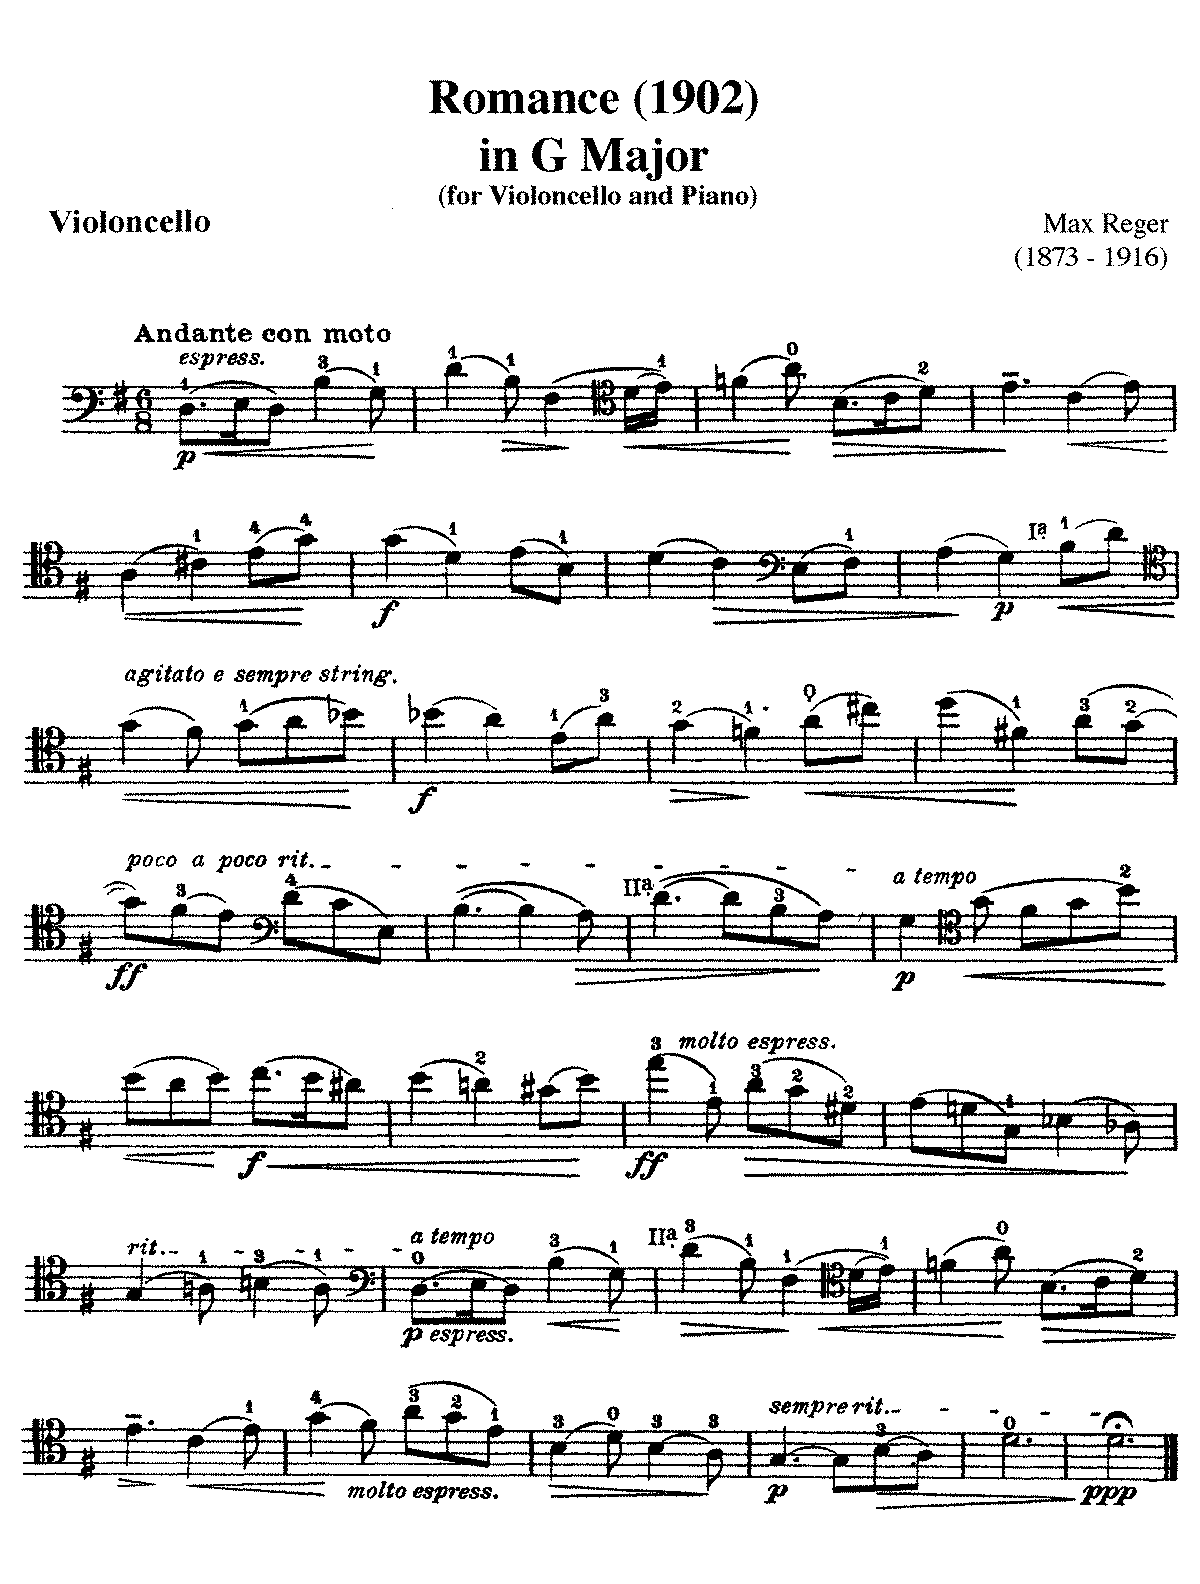 PMLP27876-Reger - Romance (1902) in G Major cello piano.pdf